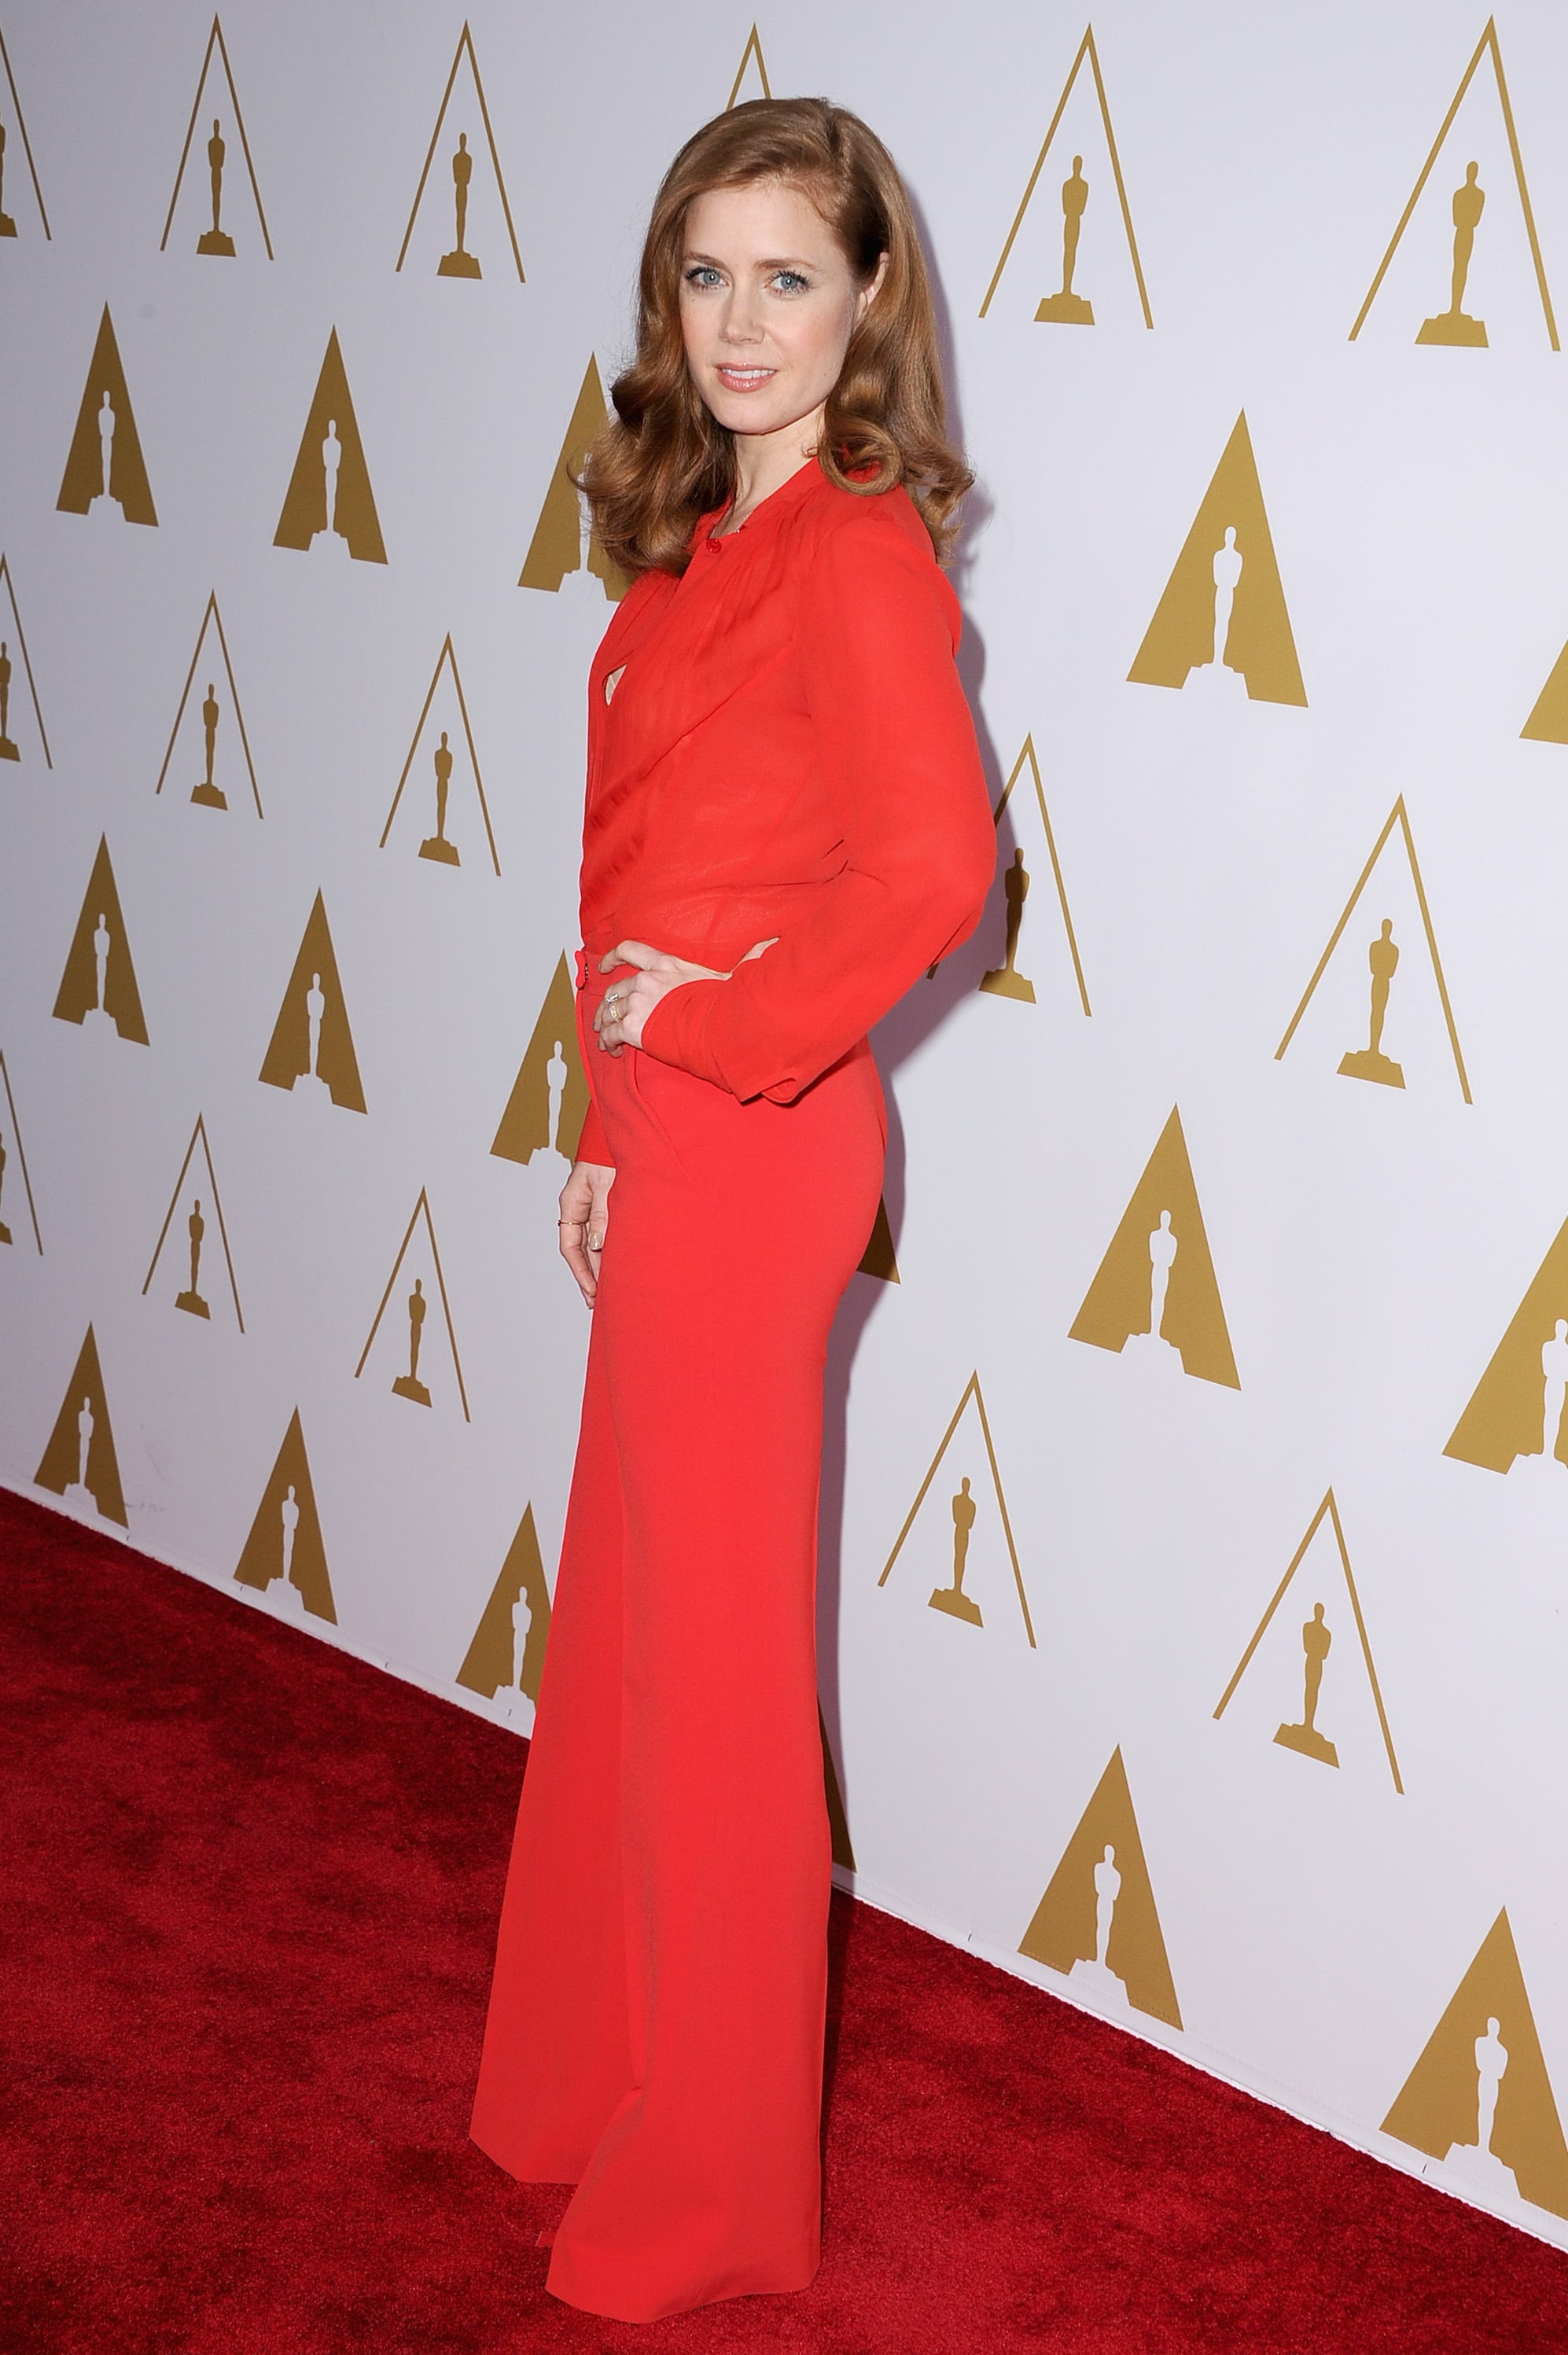 Amy Adams looked ravishing in red.